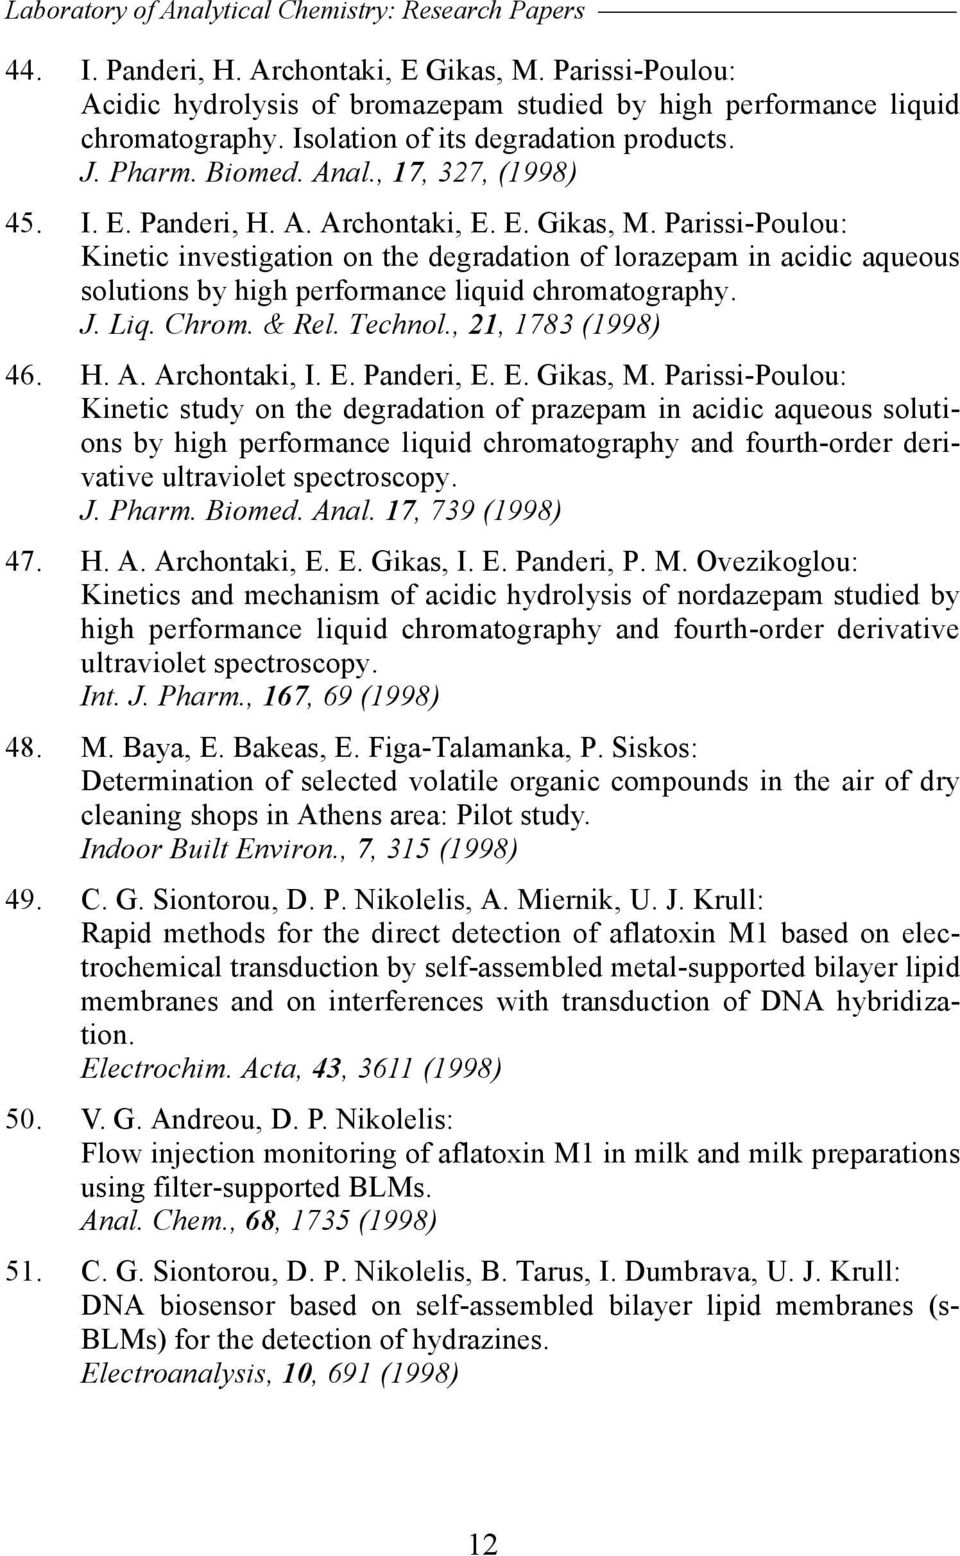 Parissi-Poulou: Kinetic investigation on the degradation of lorazepam in acidic aqueous solutions by high performance liquid chromatography. J. Liq. Chrom. & Rel. Technol., 21, 1783 (1998) 46. H. A.